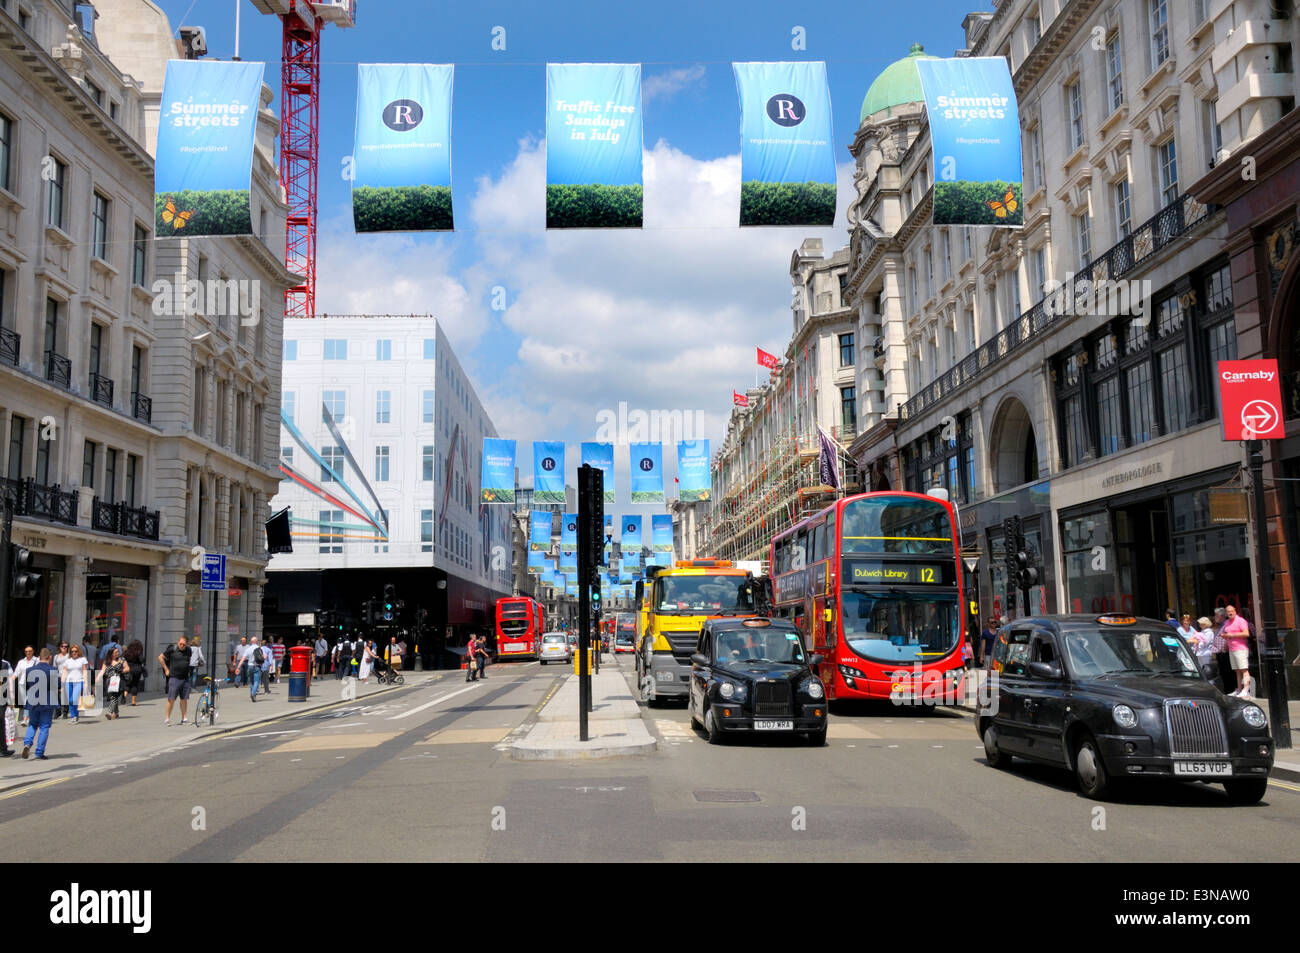 London, England, UK. Regent Street. Traffic and blue banners publicising 'Traffic Free Sundays in July' - Stock Image